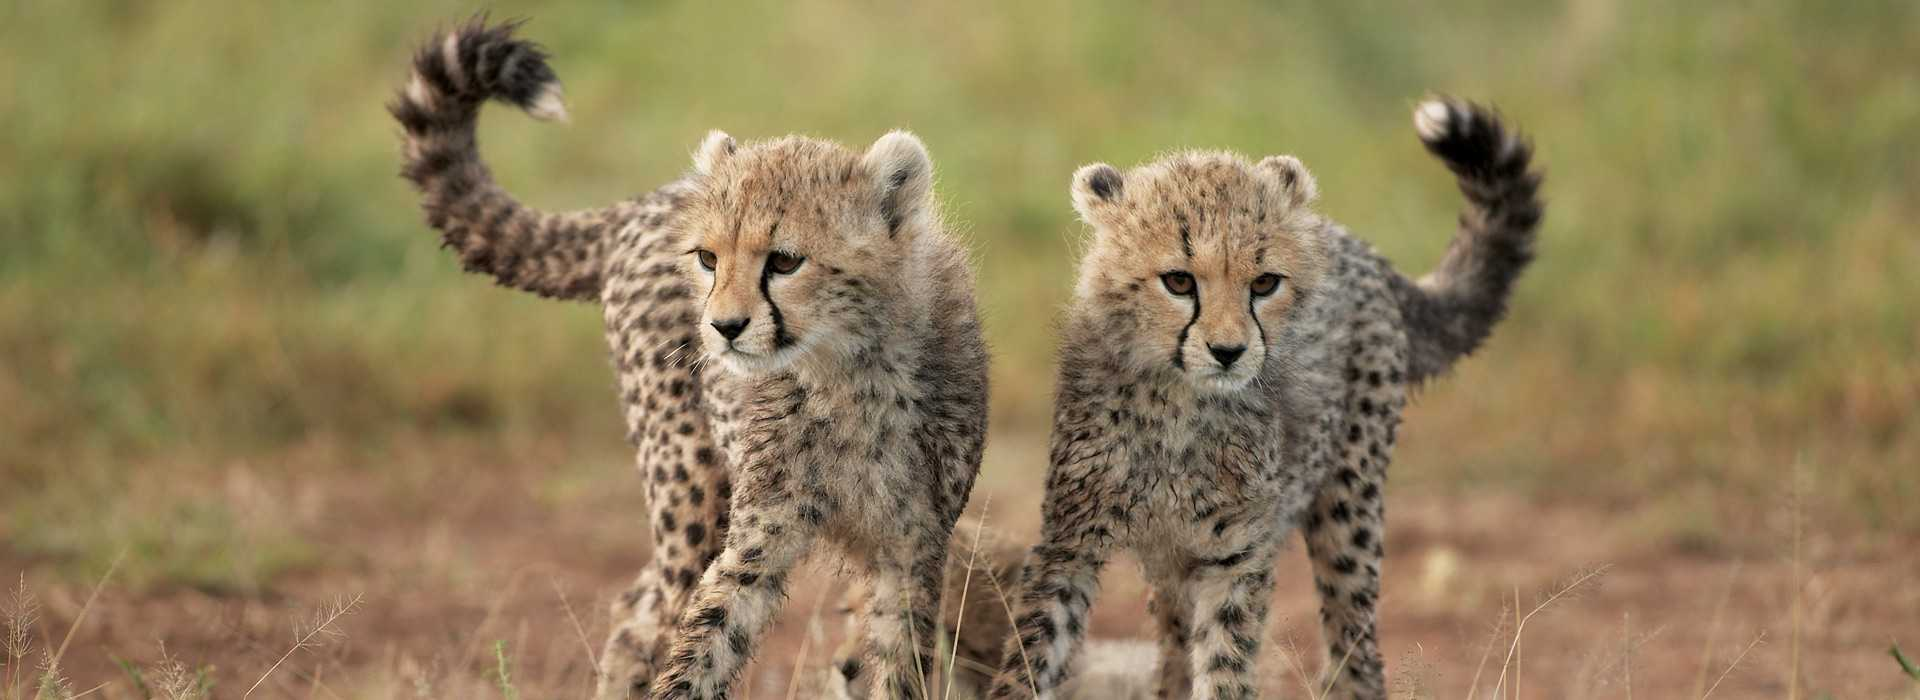 Two Adorable Cheetah Cubs